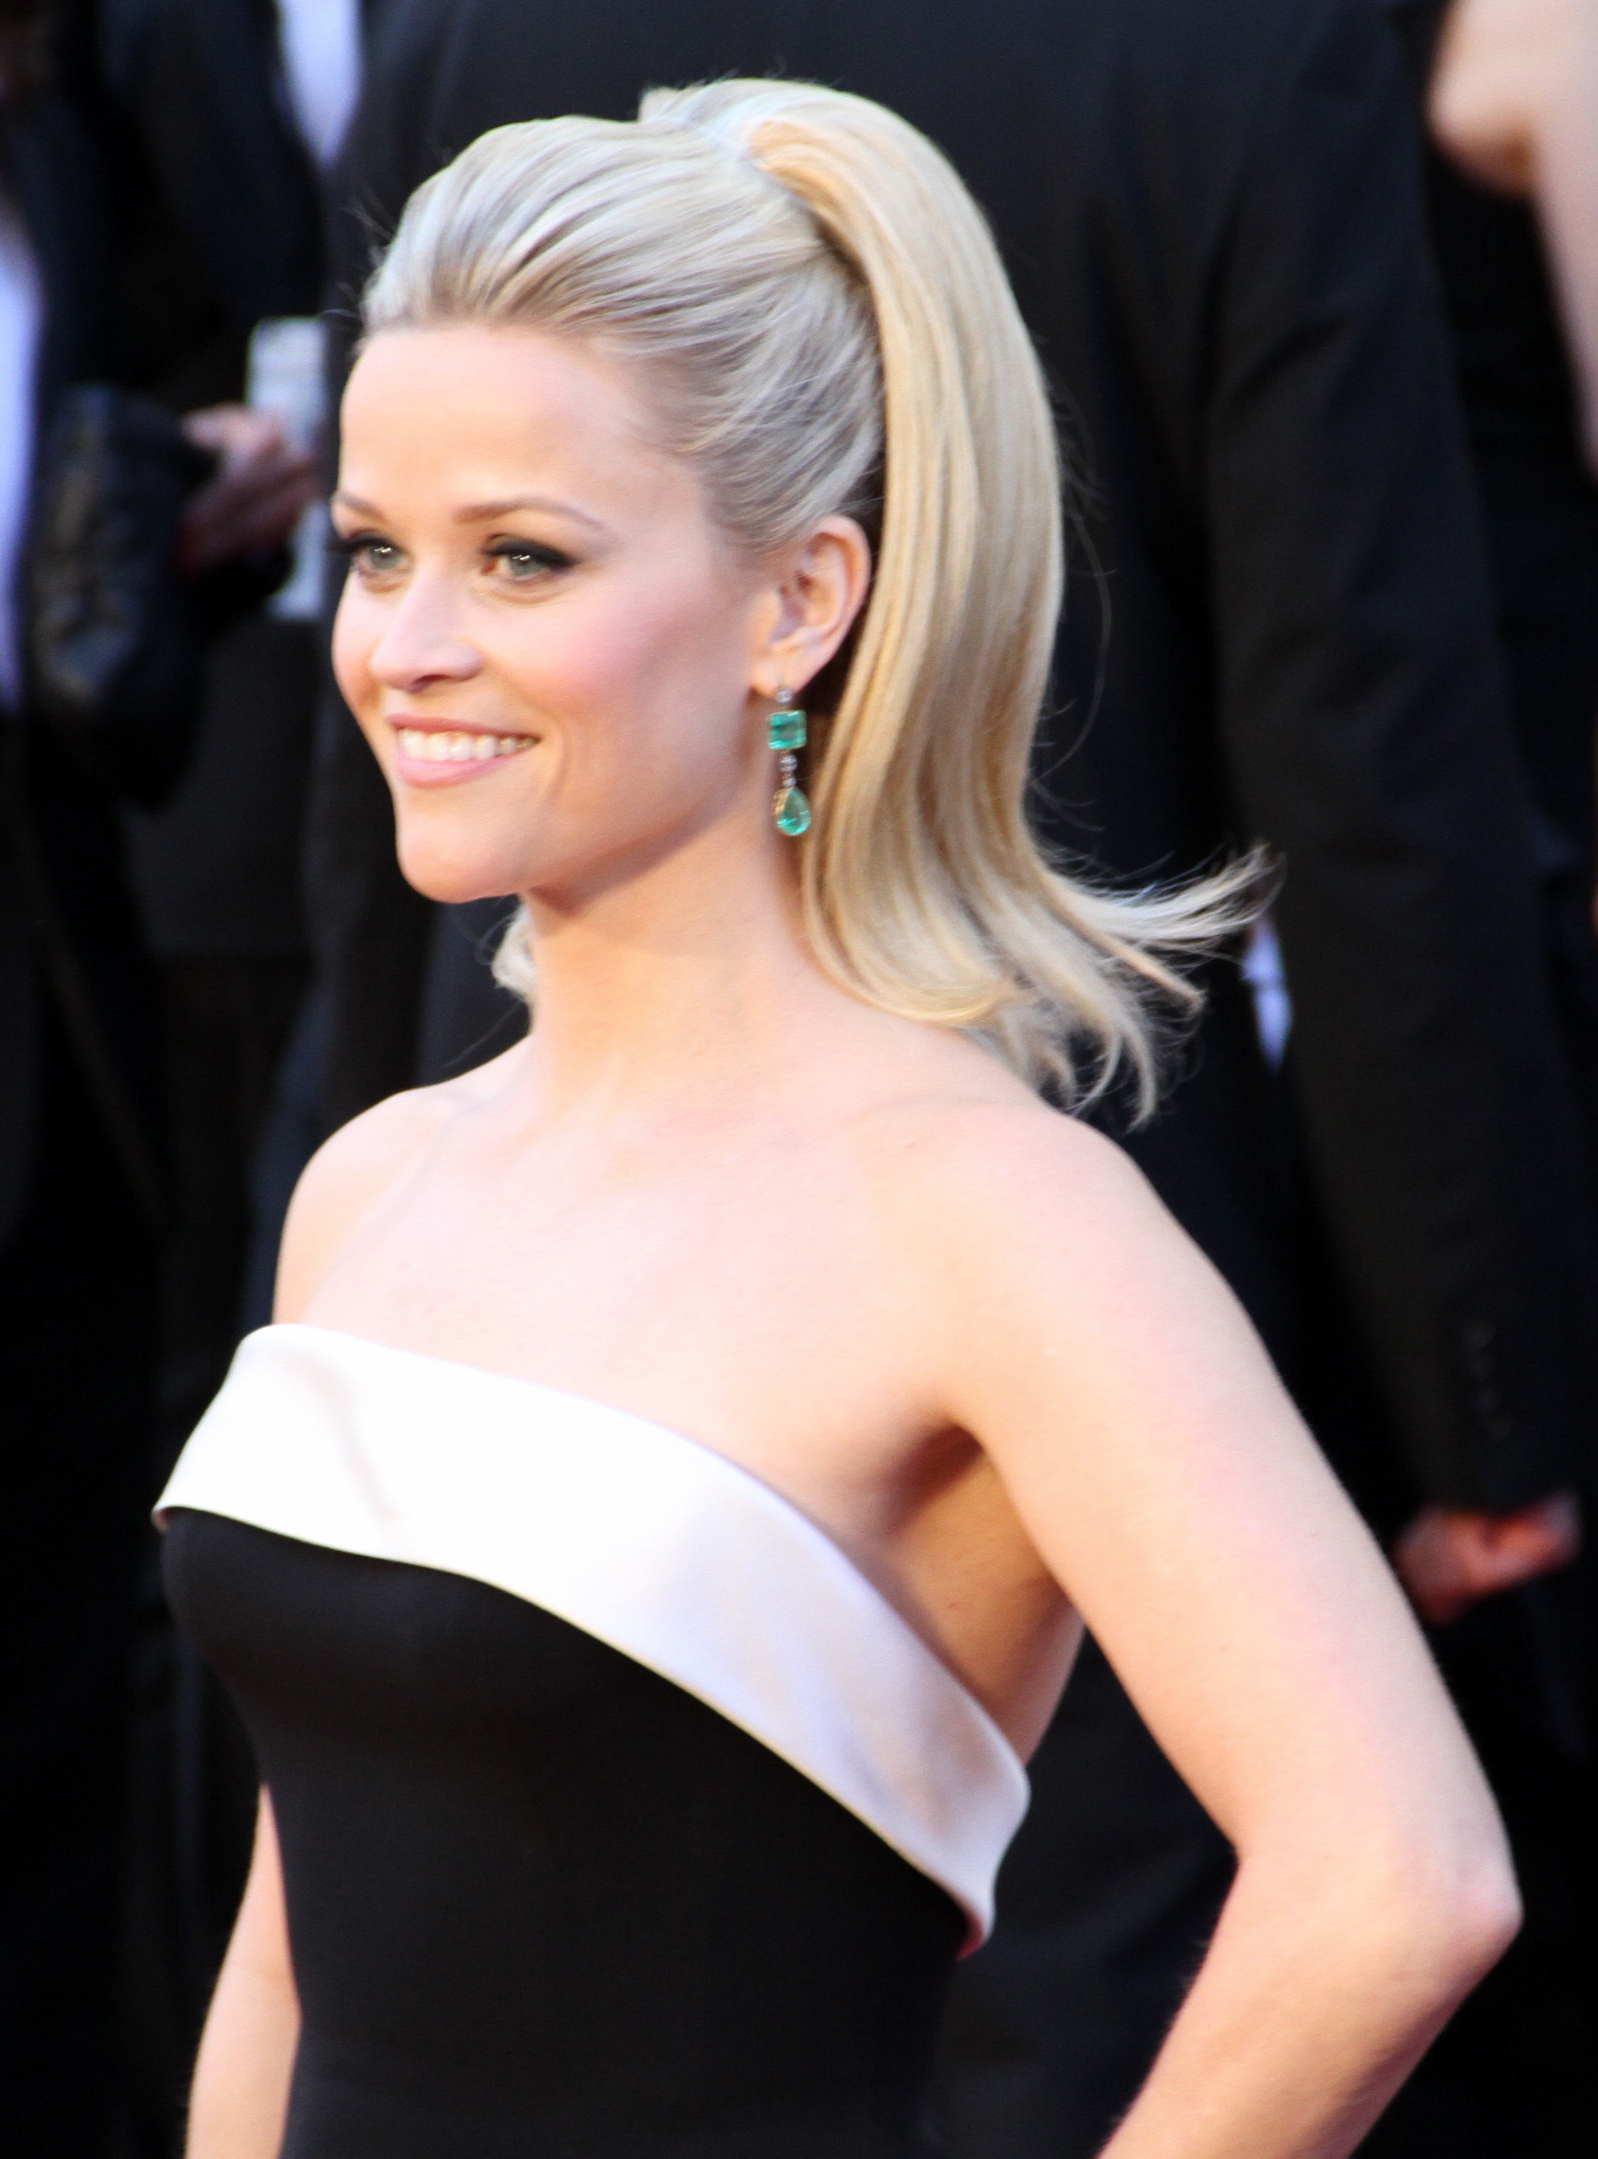 http://upload.wikimedia.org/wikipedia/commons/b/b6/Reese_Witherspoon_2011.jpg